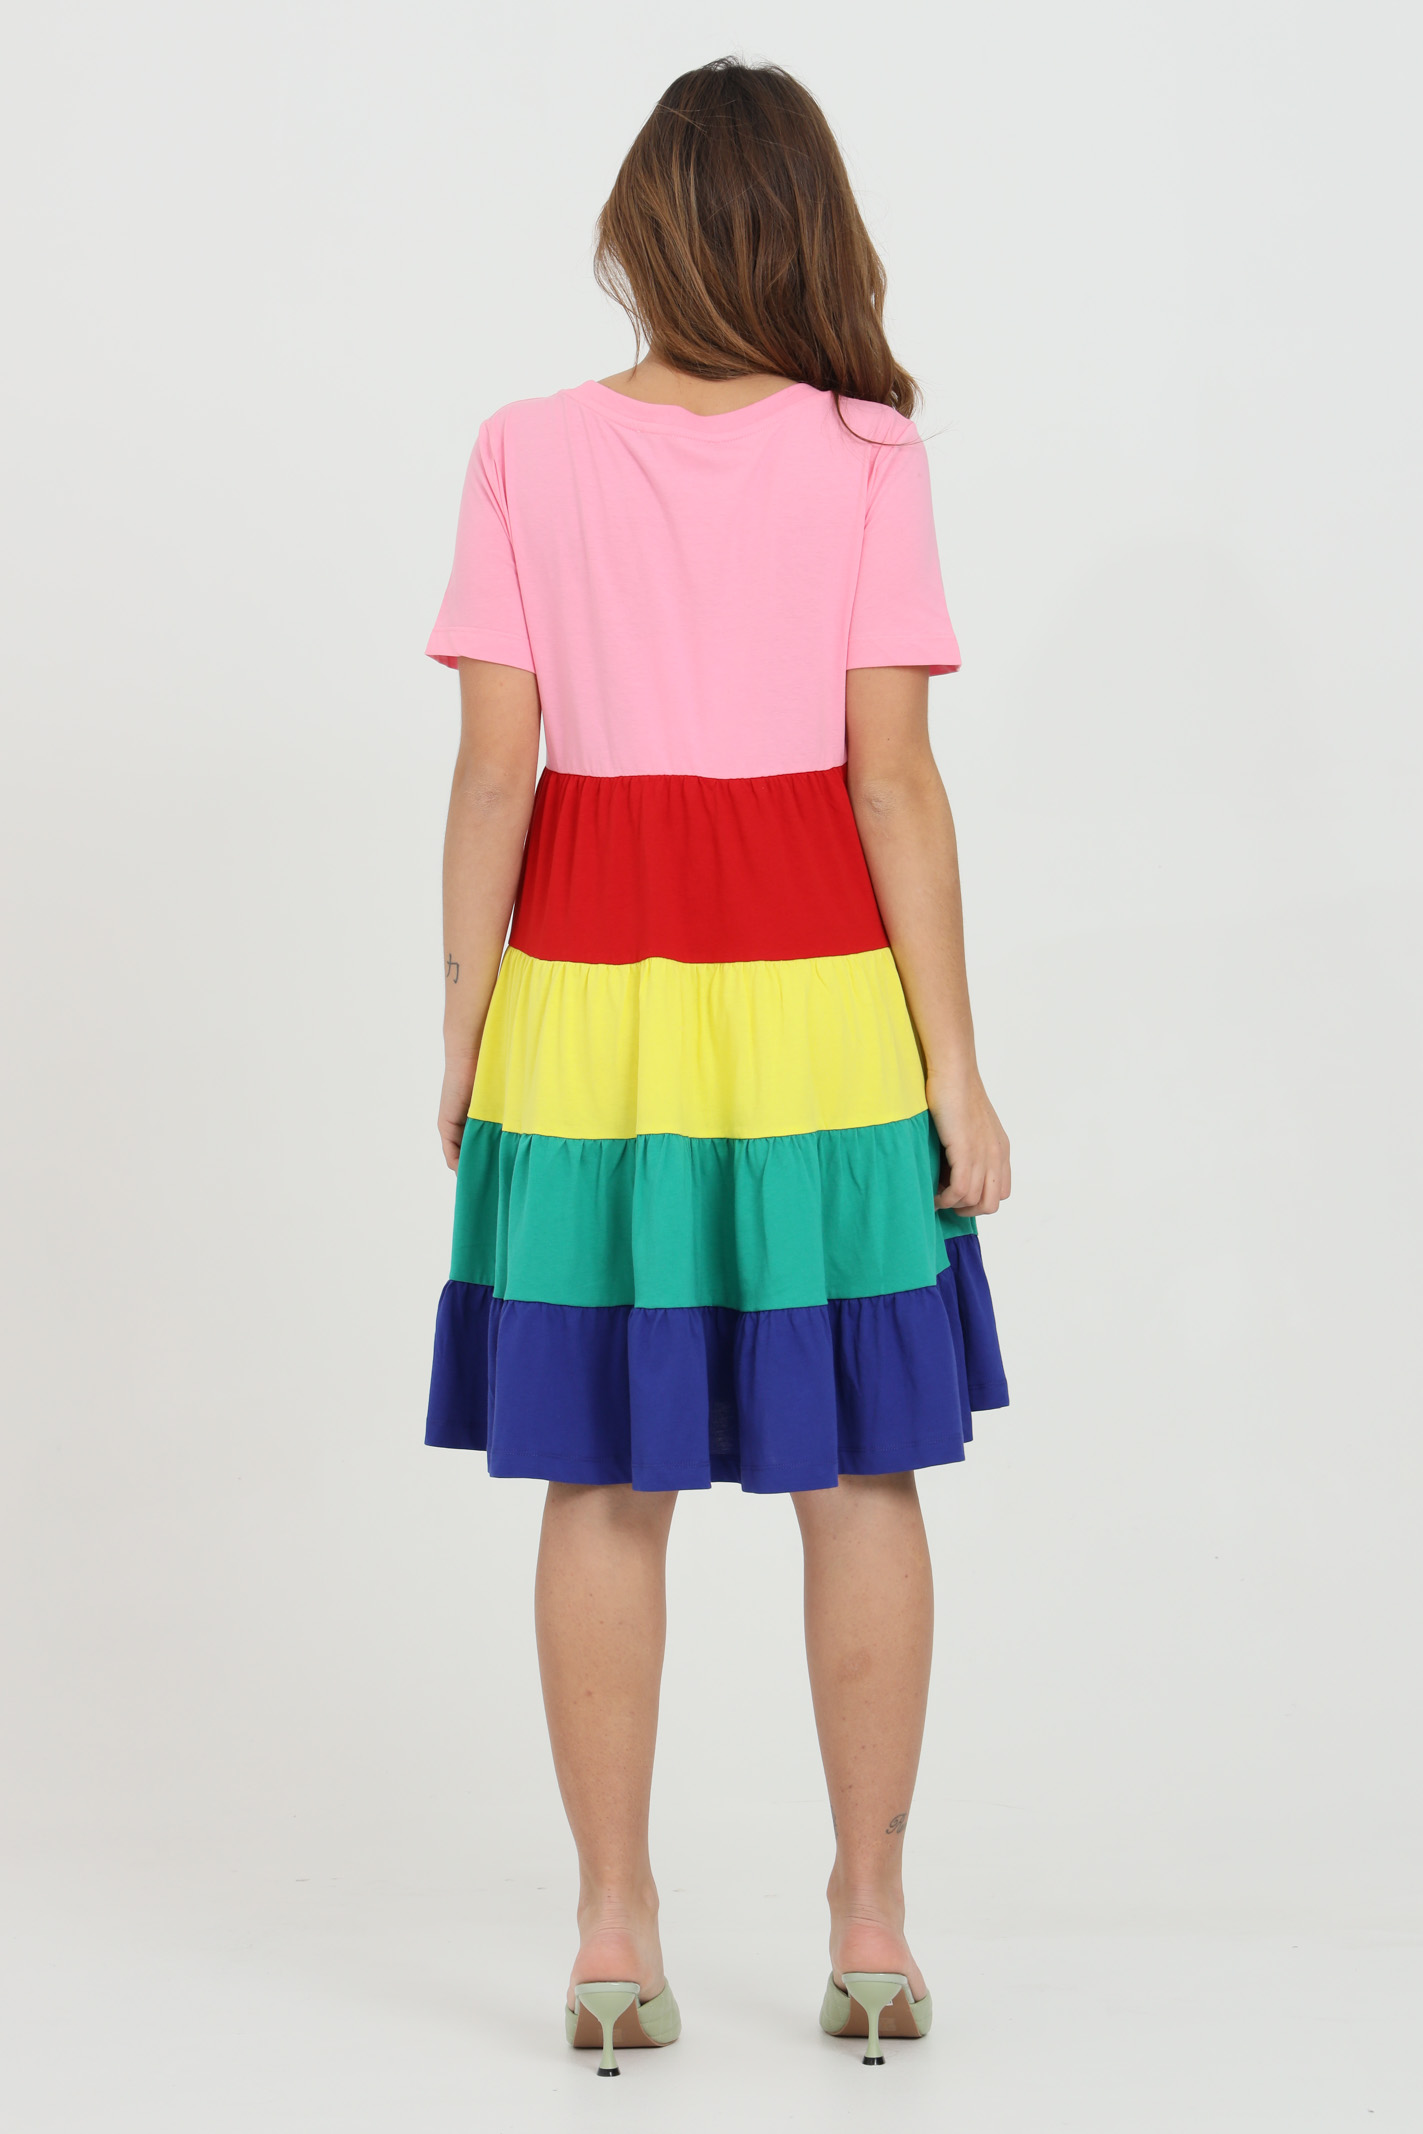 Dress with flounced skirt LOVE MOSCHINO | Dress | W5C1380M38764005